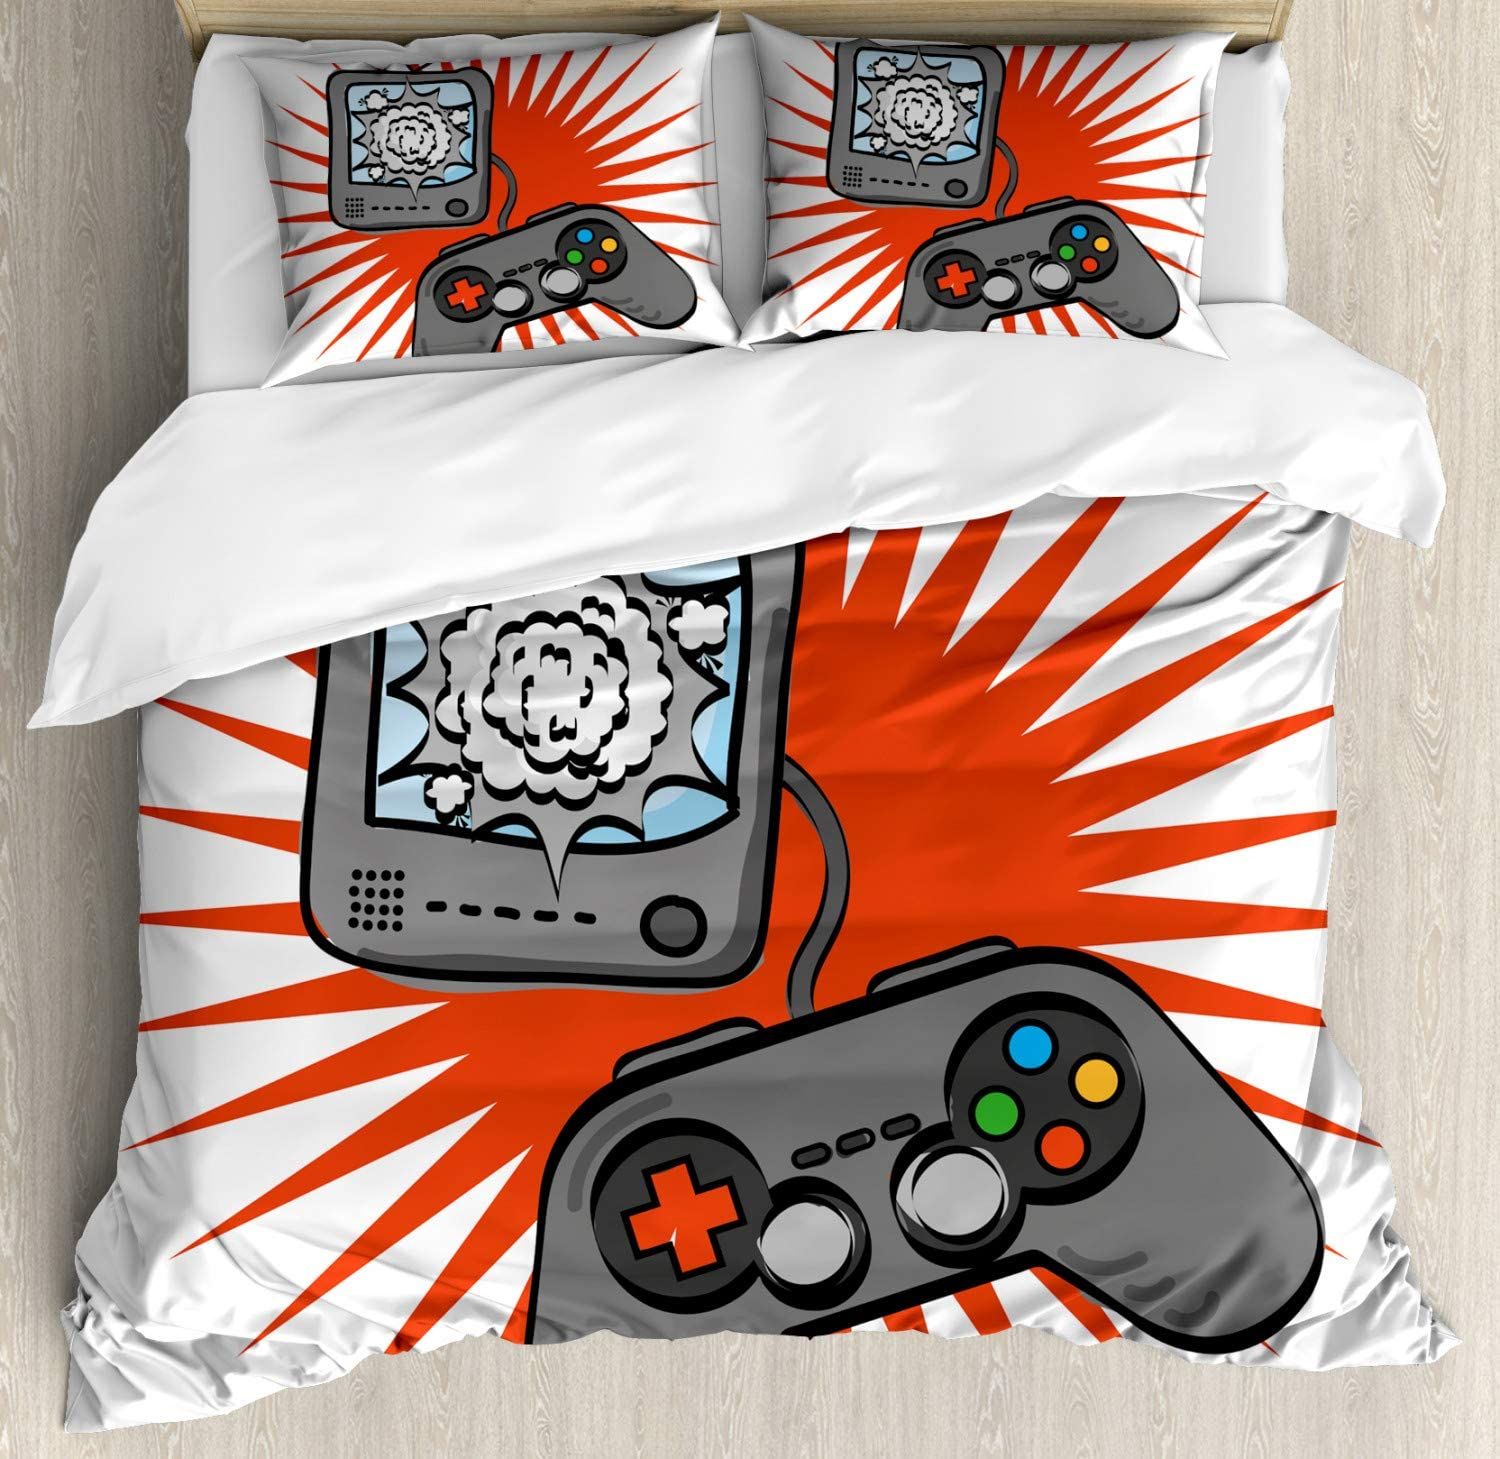 Lunarable Games Duvet Cover Set, Kids Video Games Themed Design in Retro Style Gamepad Console Entertainment, Decorative 3 Piece Bedding Set with 2 Pillow Shams, Queen Size, Orange White